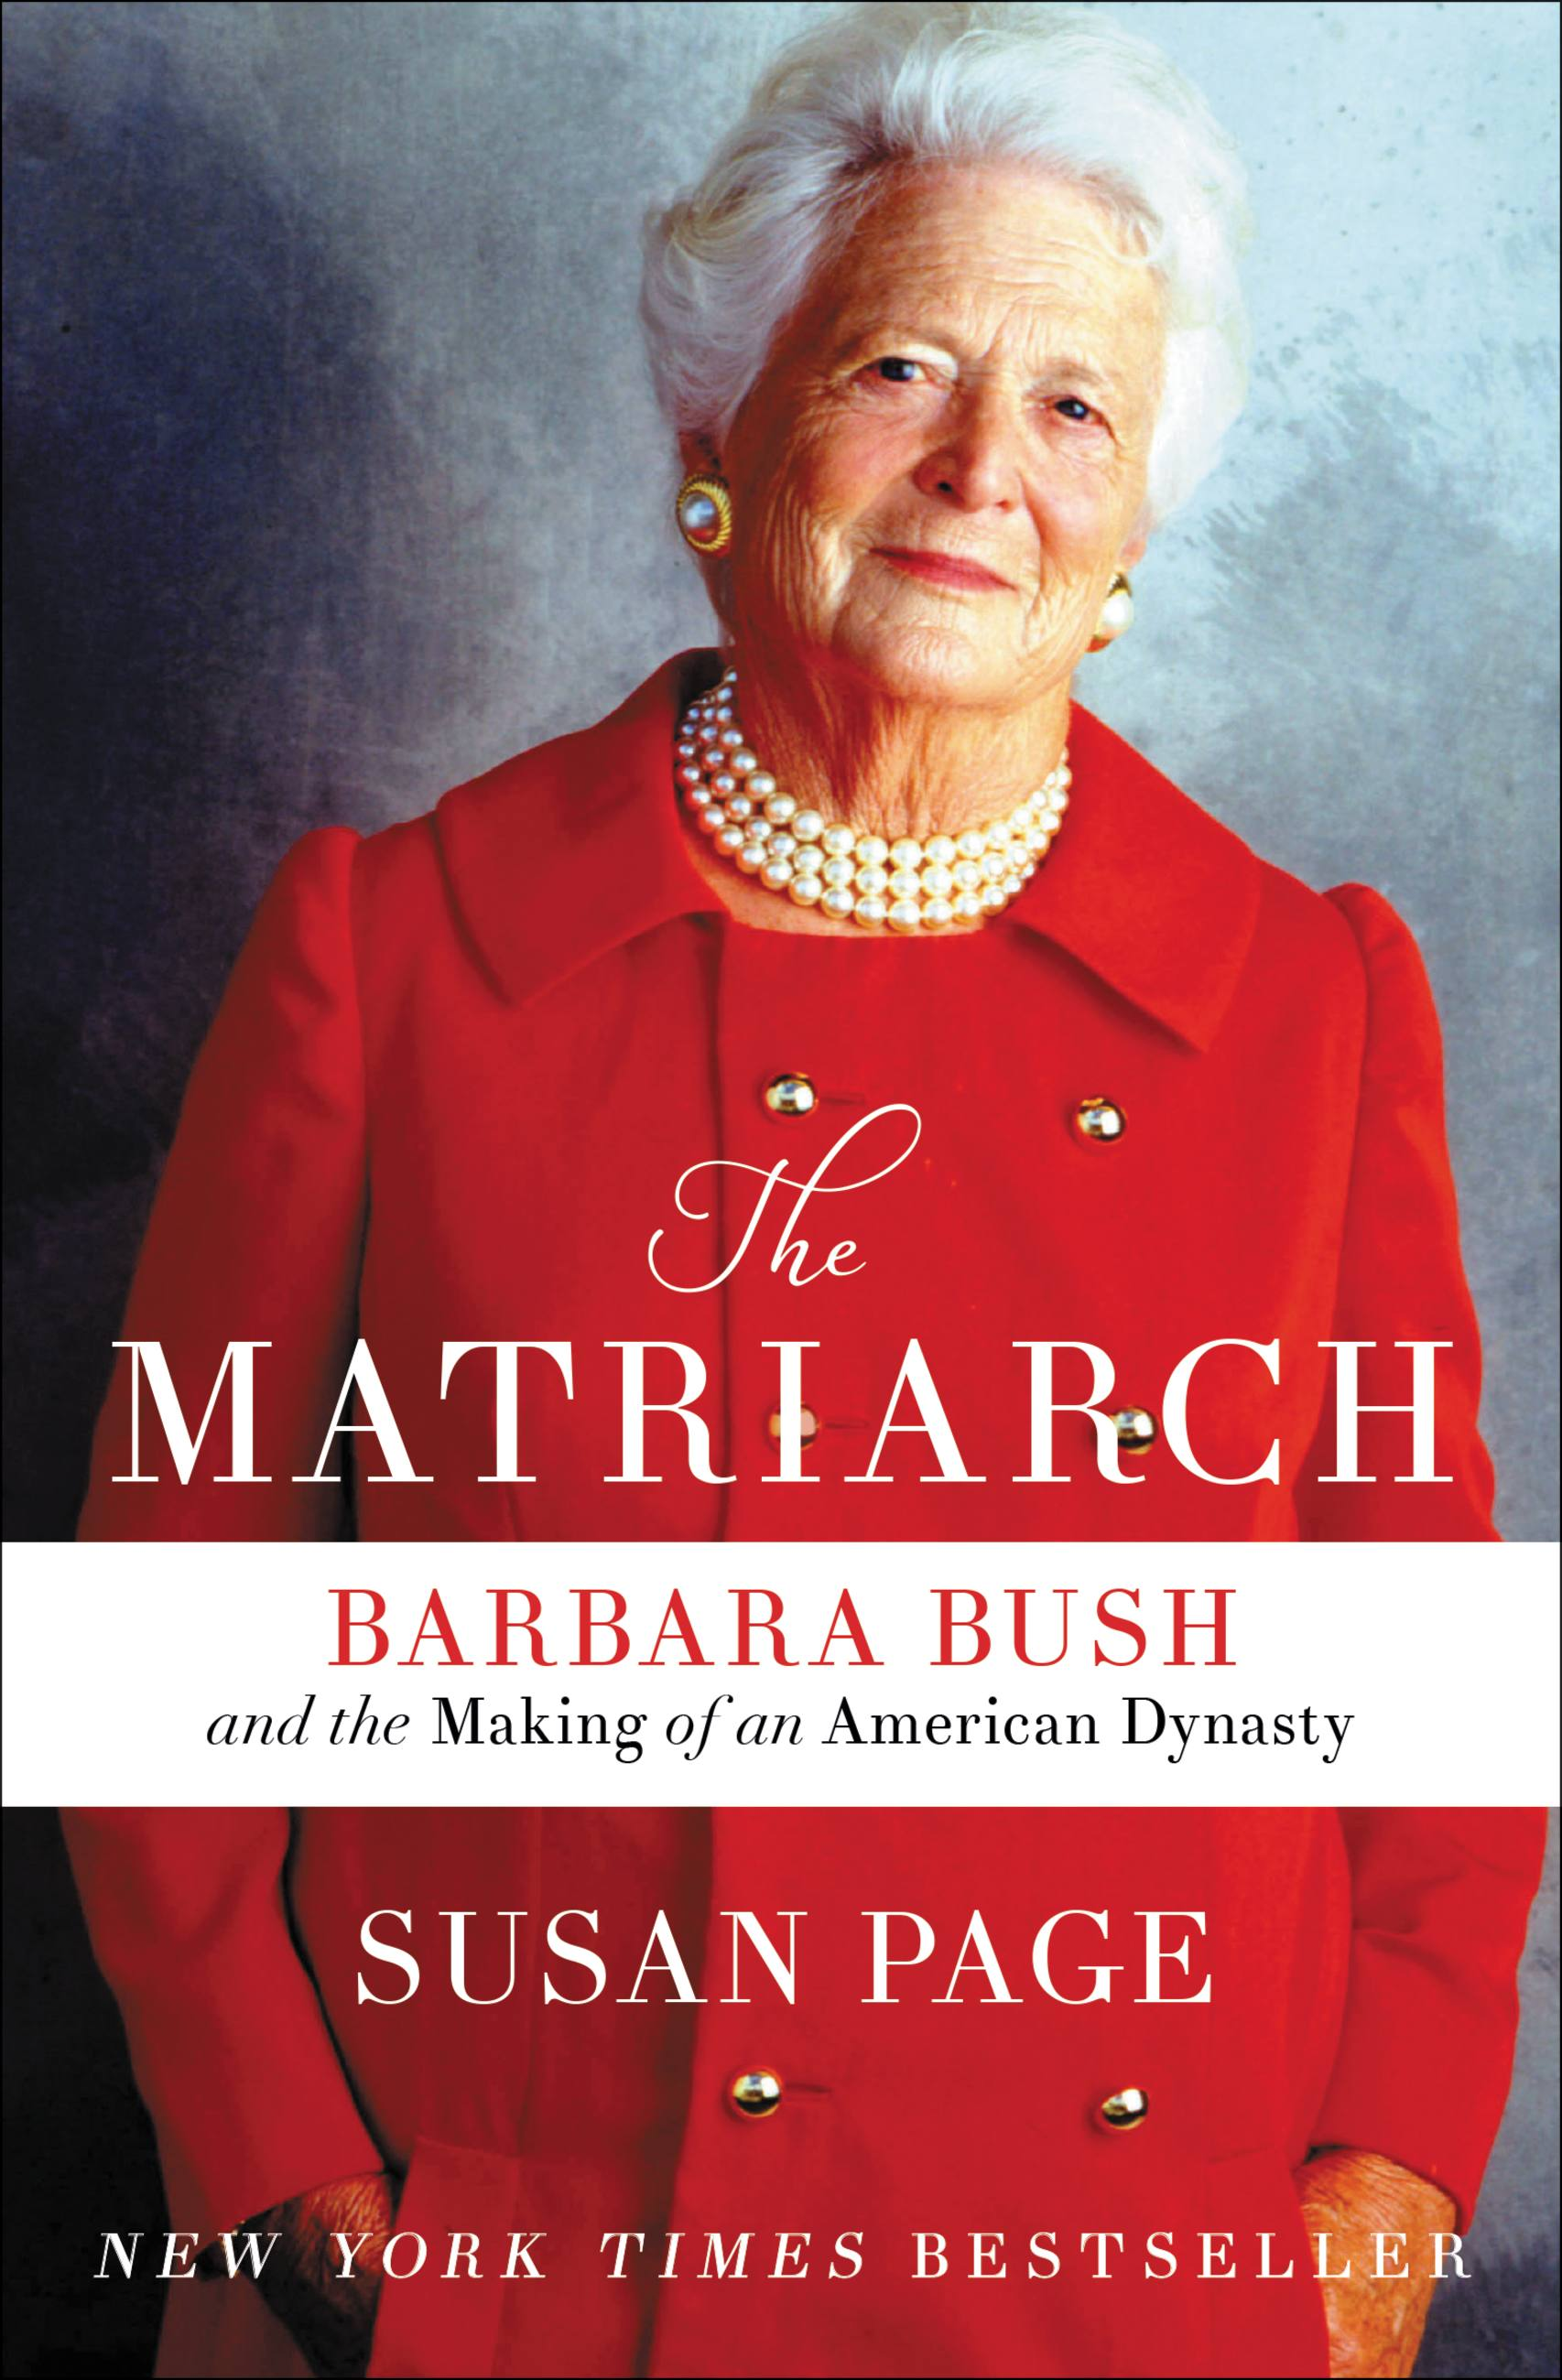 The Matriarch Barbara Bush and the Making of an American Dynasty